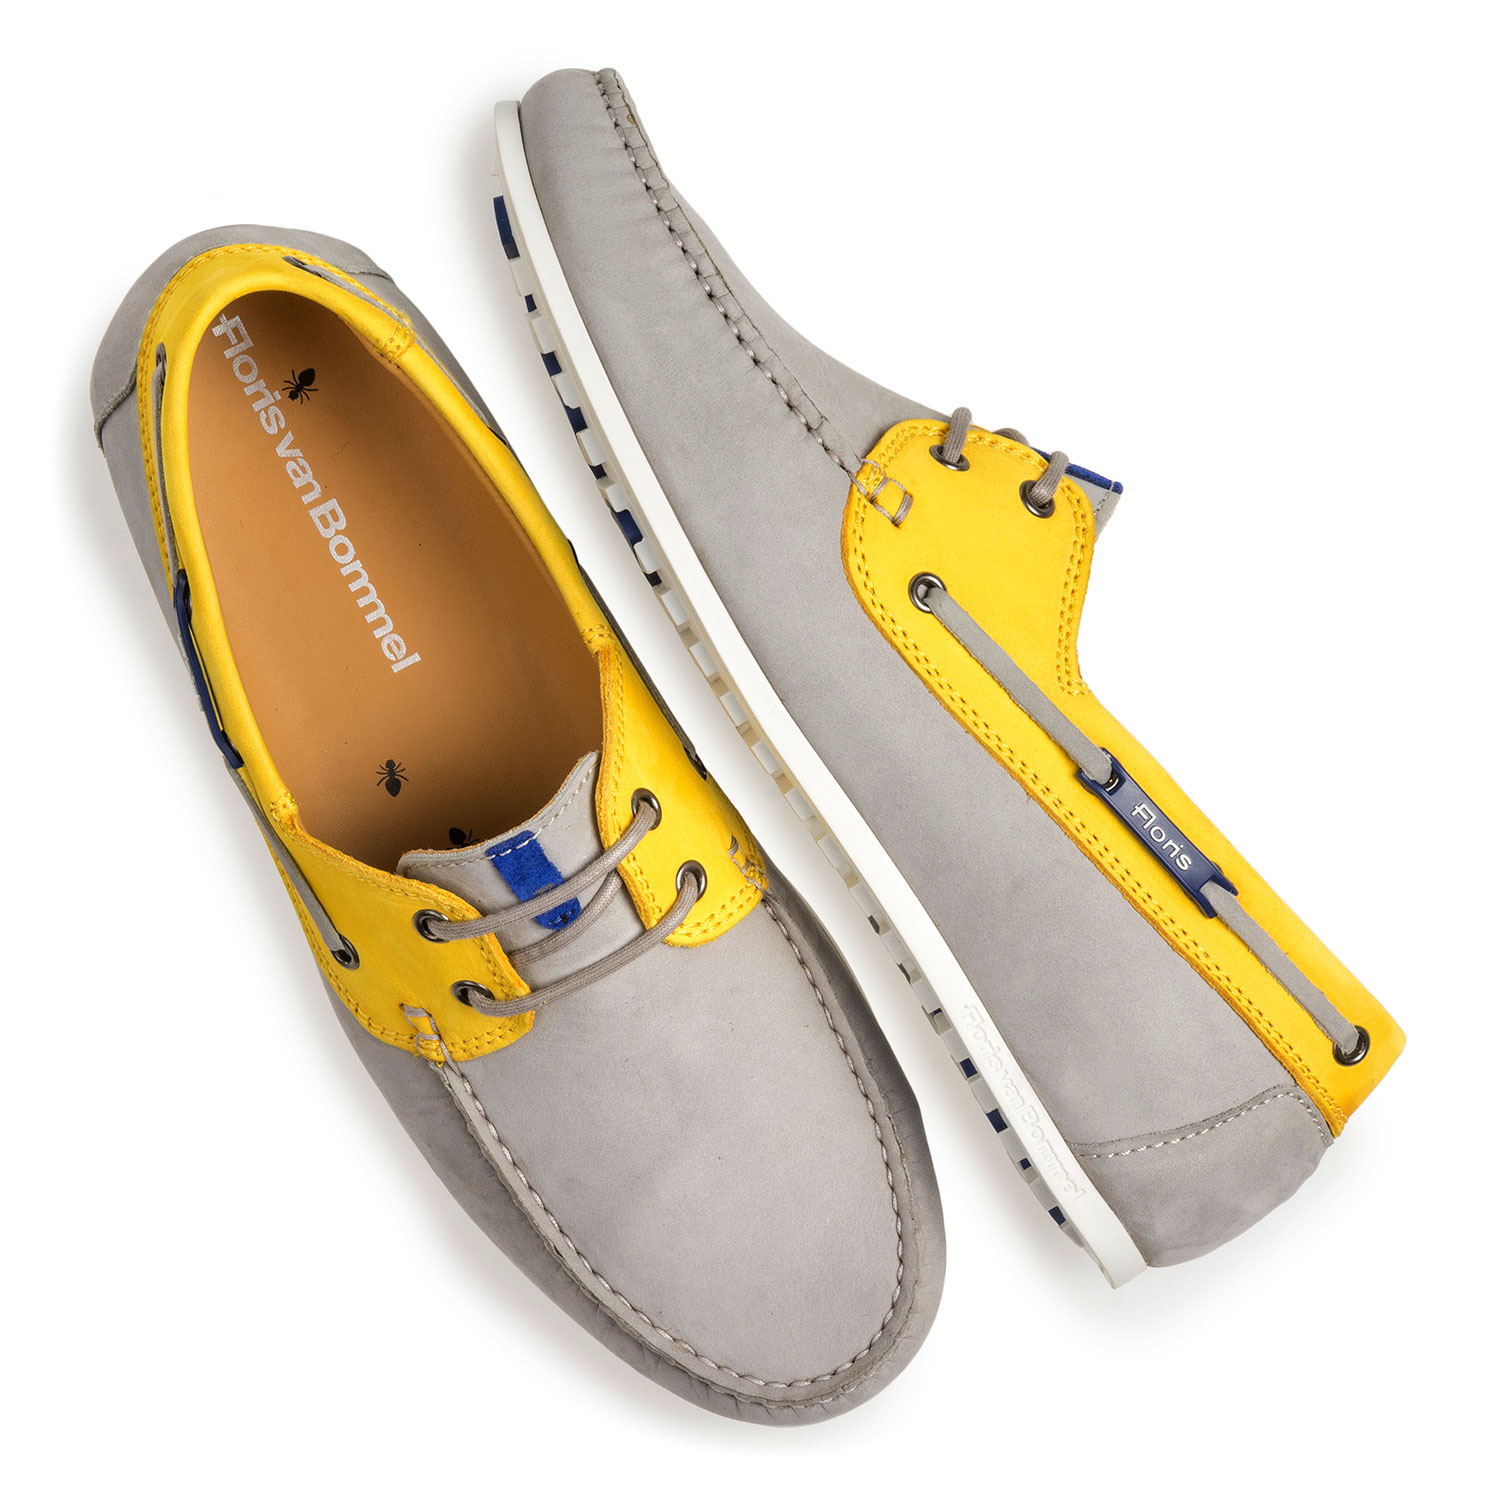 15035/13 - Grey and yellow nubuck leather boat shoe